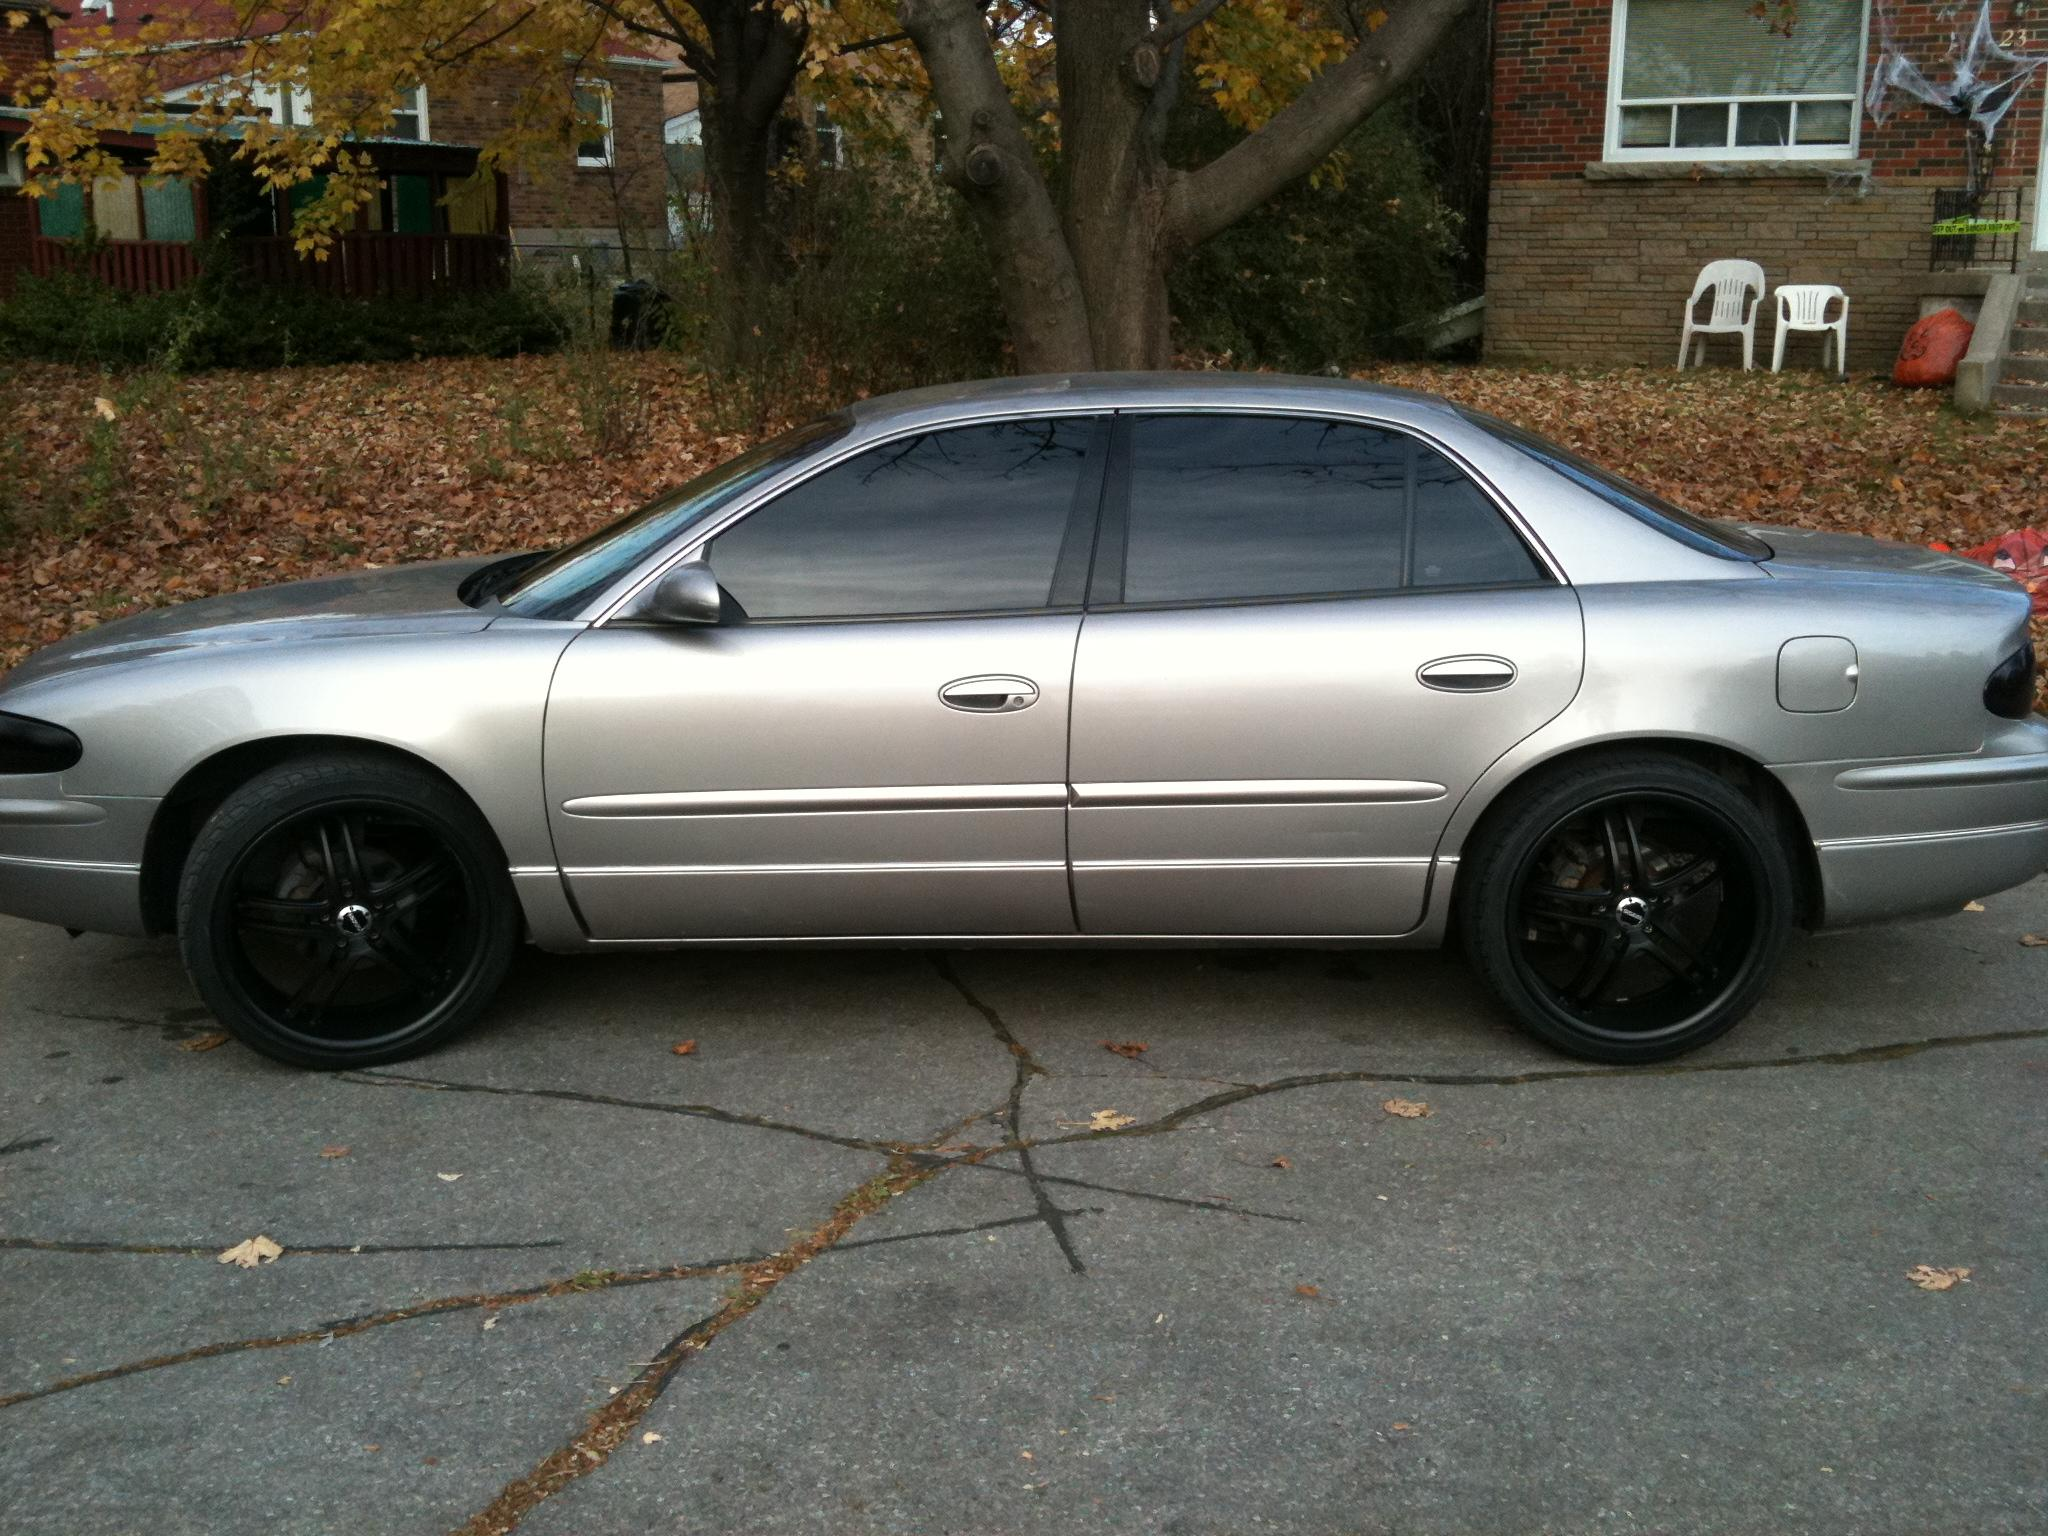 LazerMazur's 1999 Buick Regal